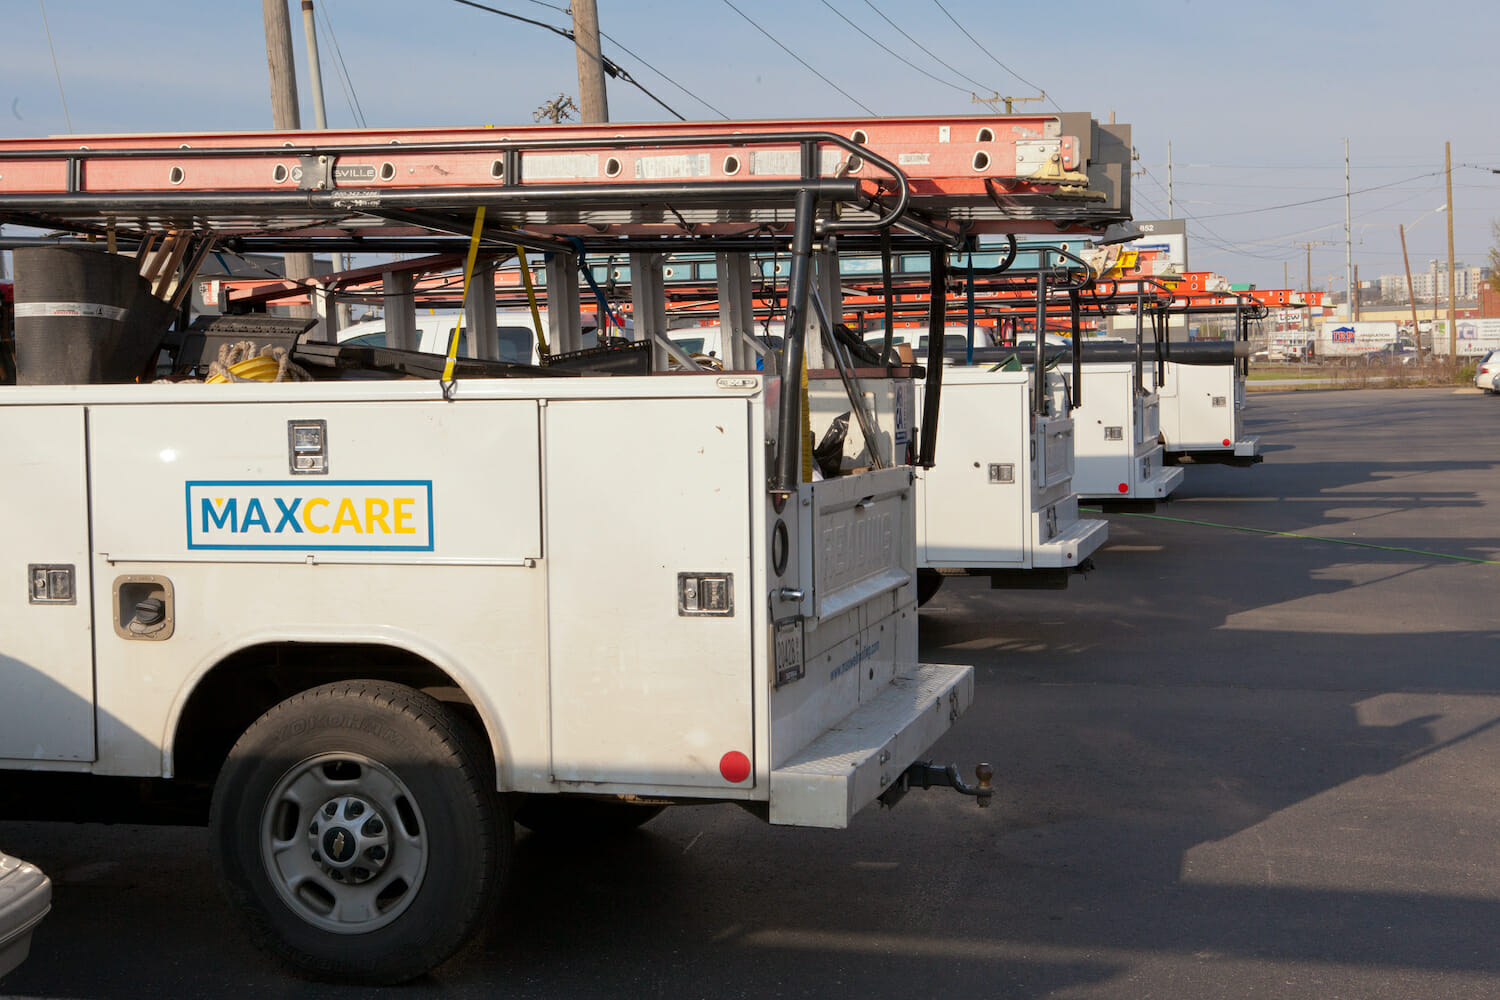 four MAXCare service trucks parked in a row